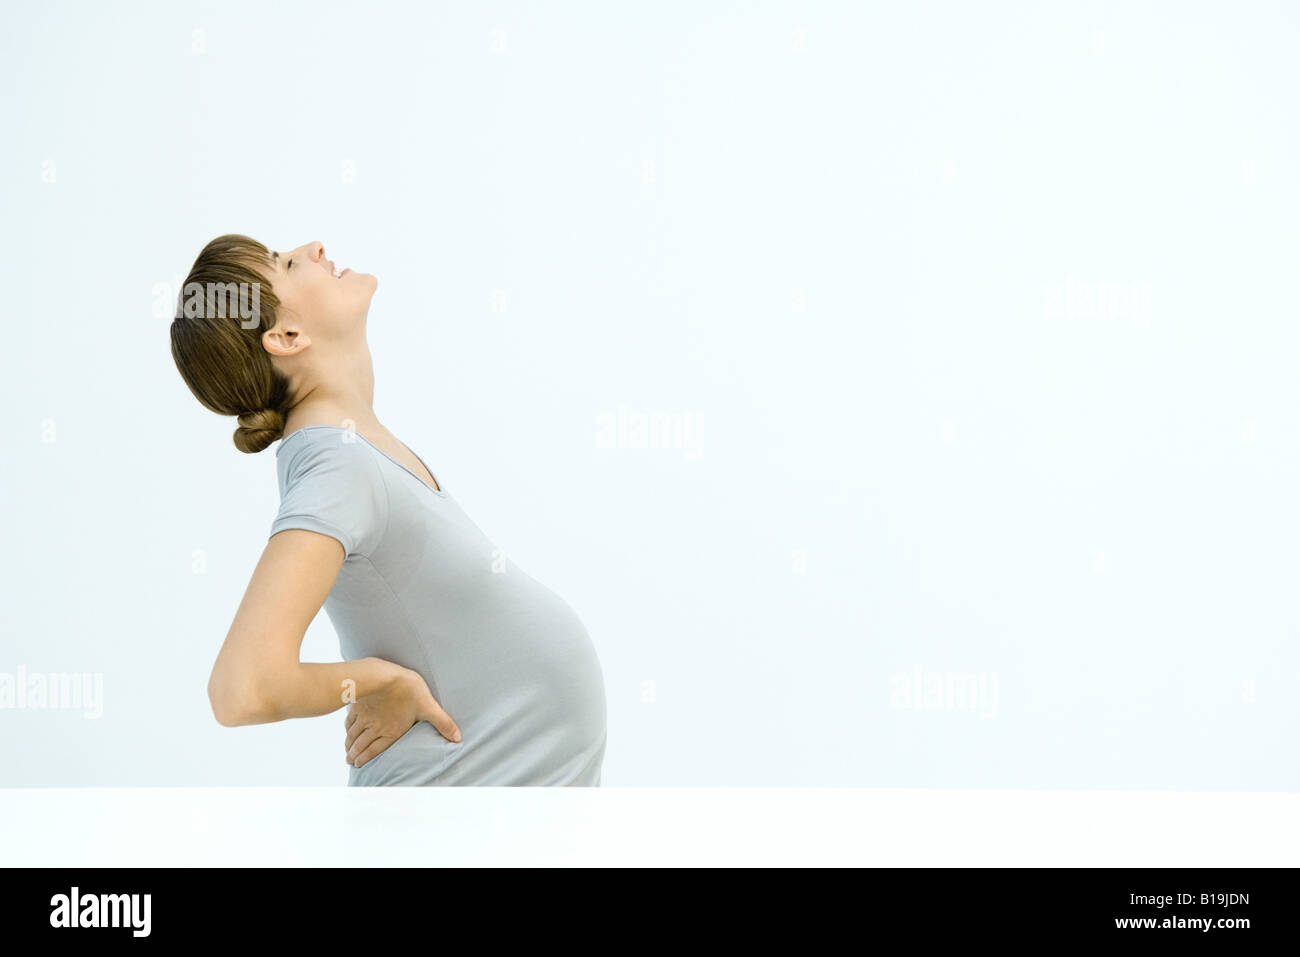 Pregnant woman holding back, leaning back, gritting teeth - Stock Image